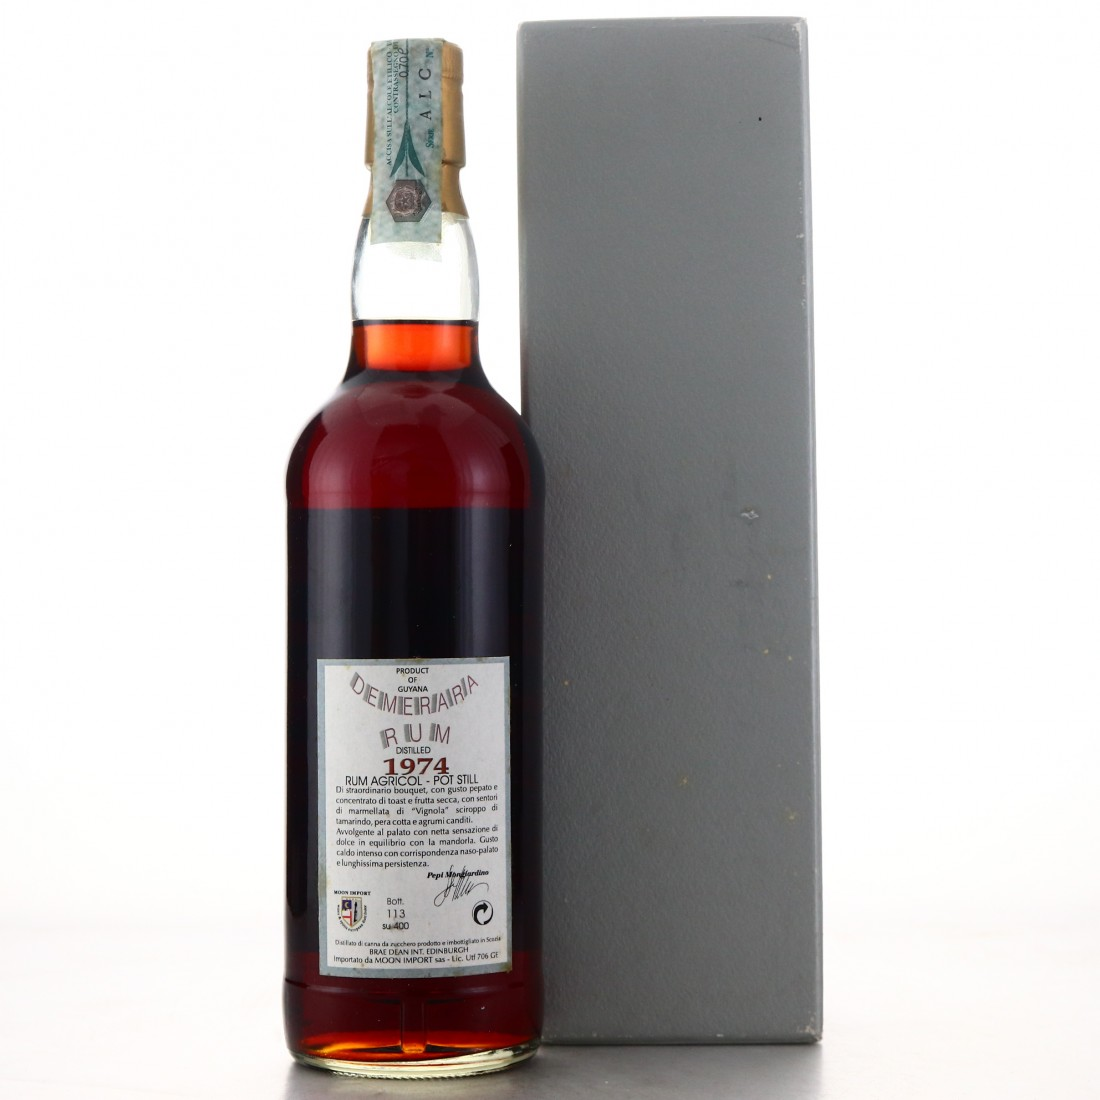 Port Mourant 1974 Moon Import Sherry Wood